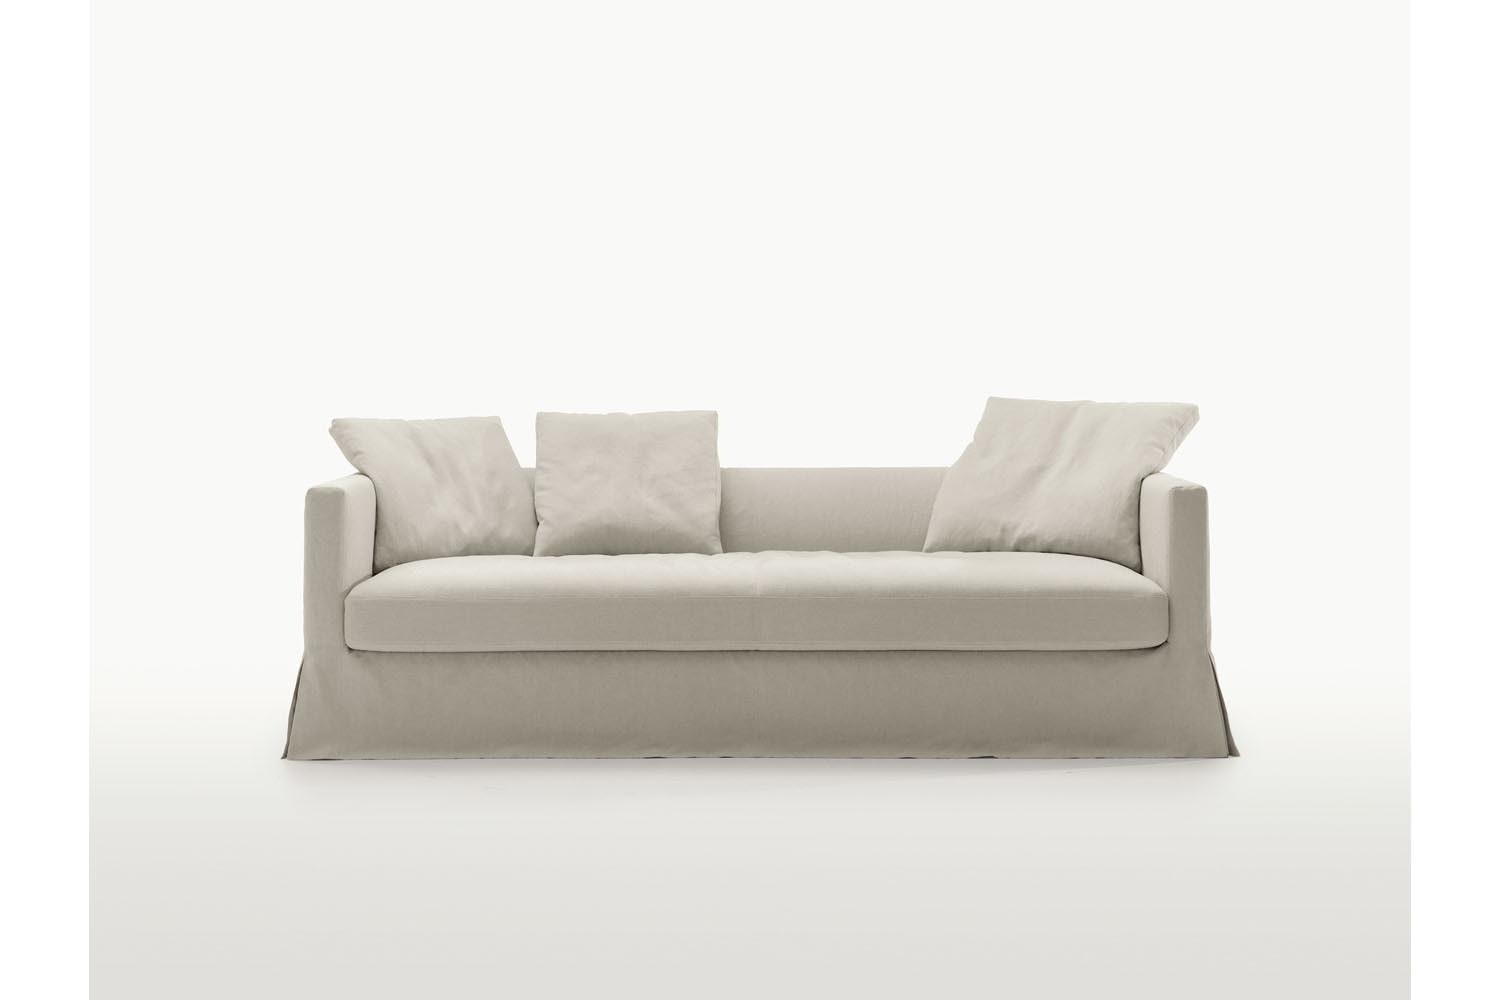 Simpliciter Sofa with Slip Cover by Antonio Citterio for Maxalto